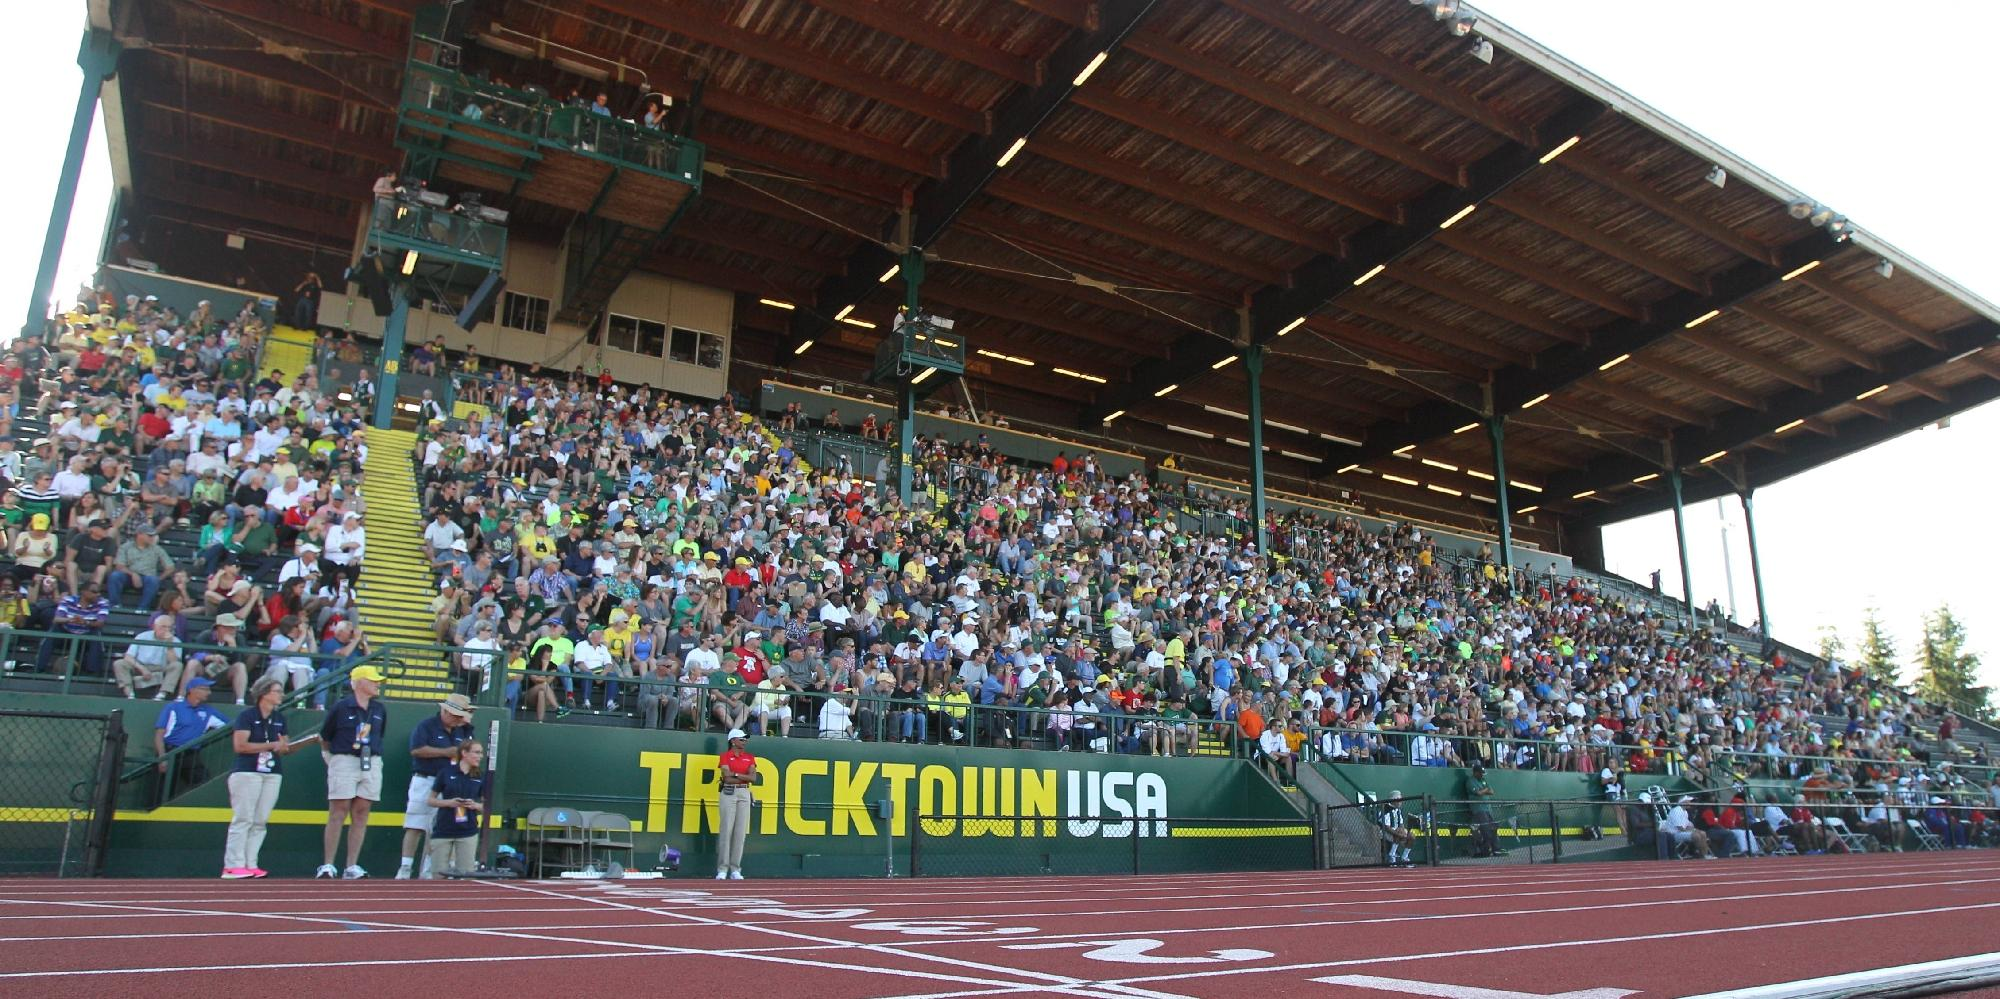 Tickets for 2016 U.S. Olympic Trials go on sale July 20 - University ...